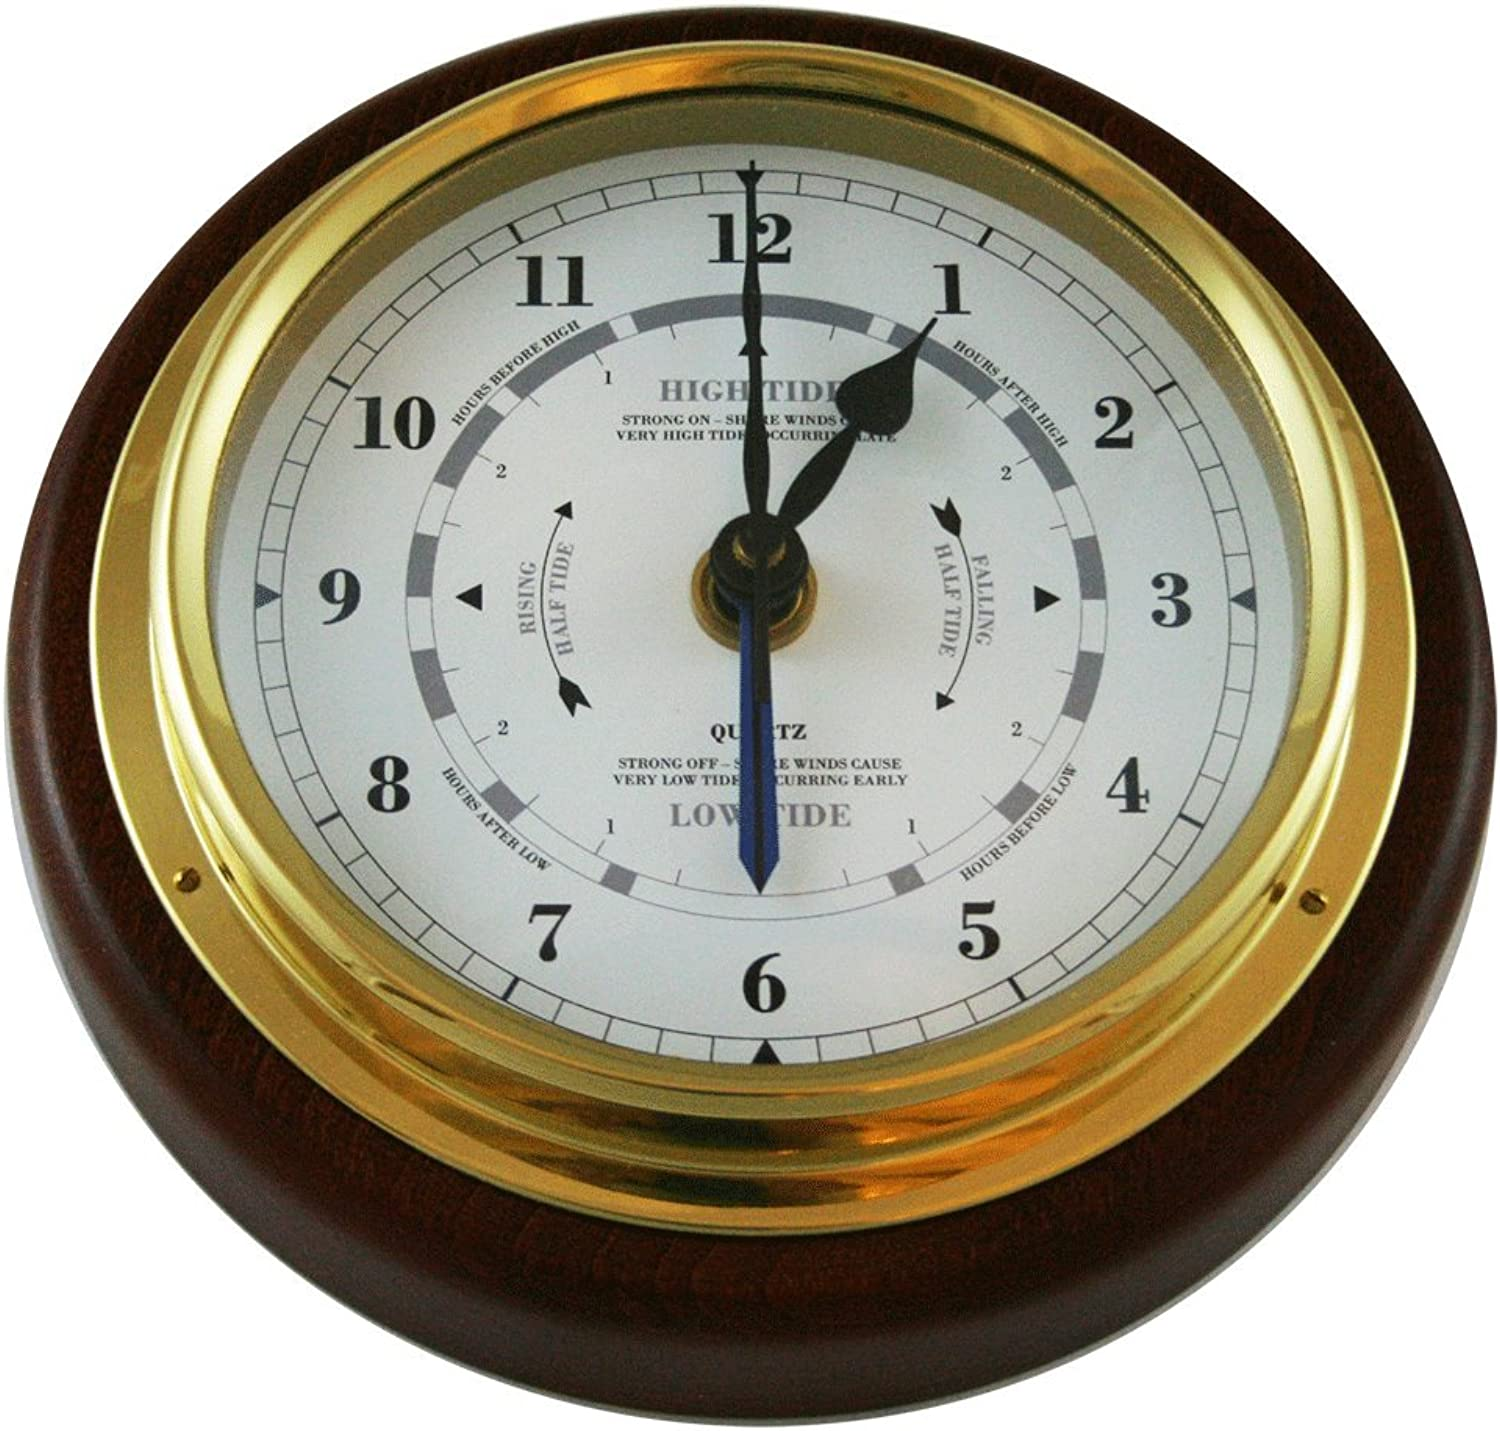 Ambient Weather 1434GU22 Fischer Mahogany Wood and Brass Tide and Time Clock, 15cm  1.3cm